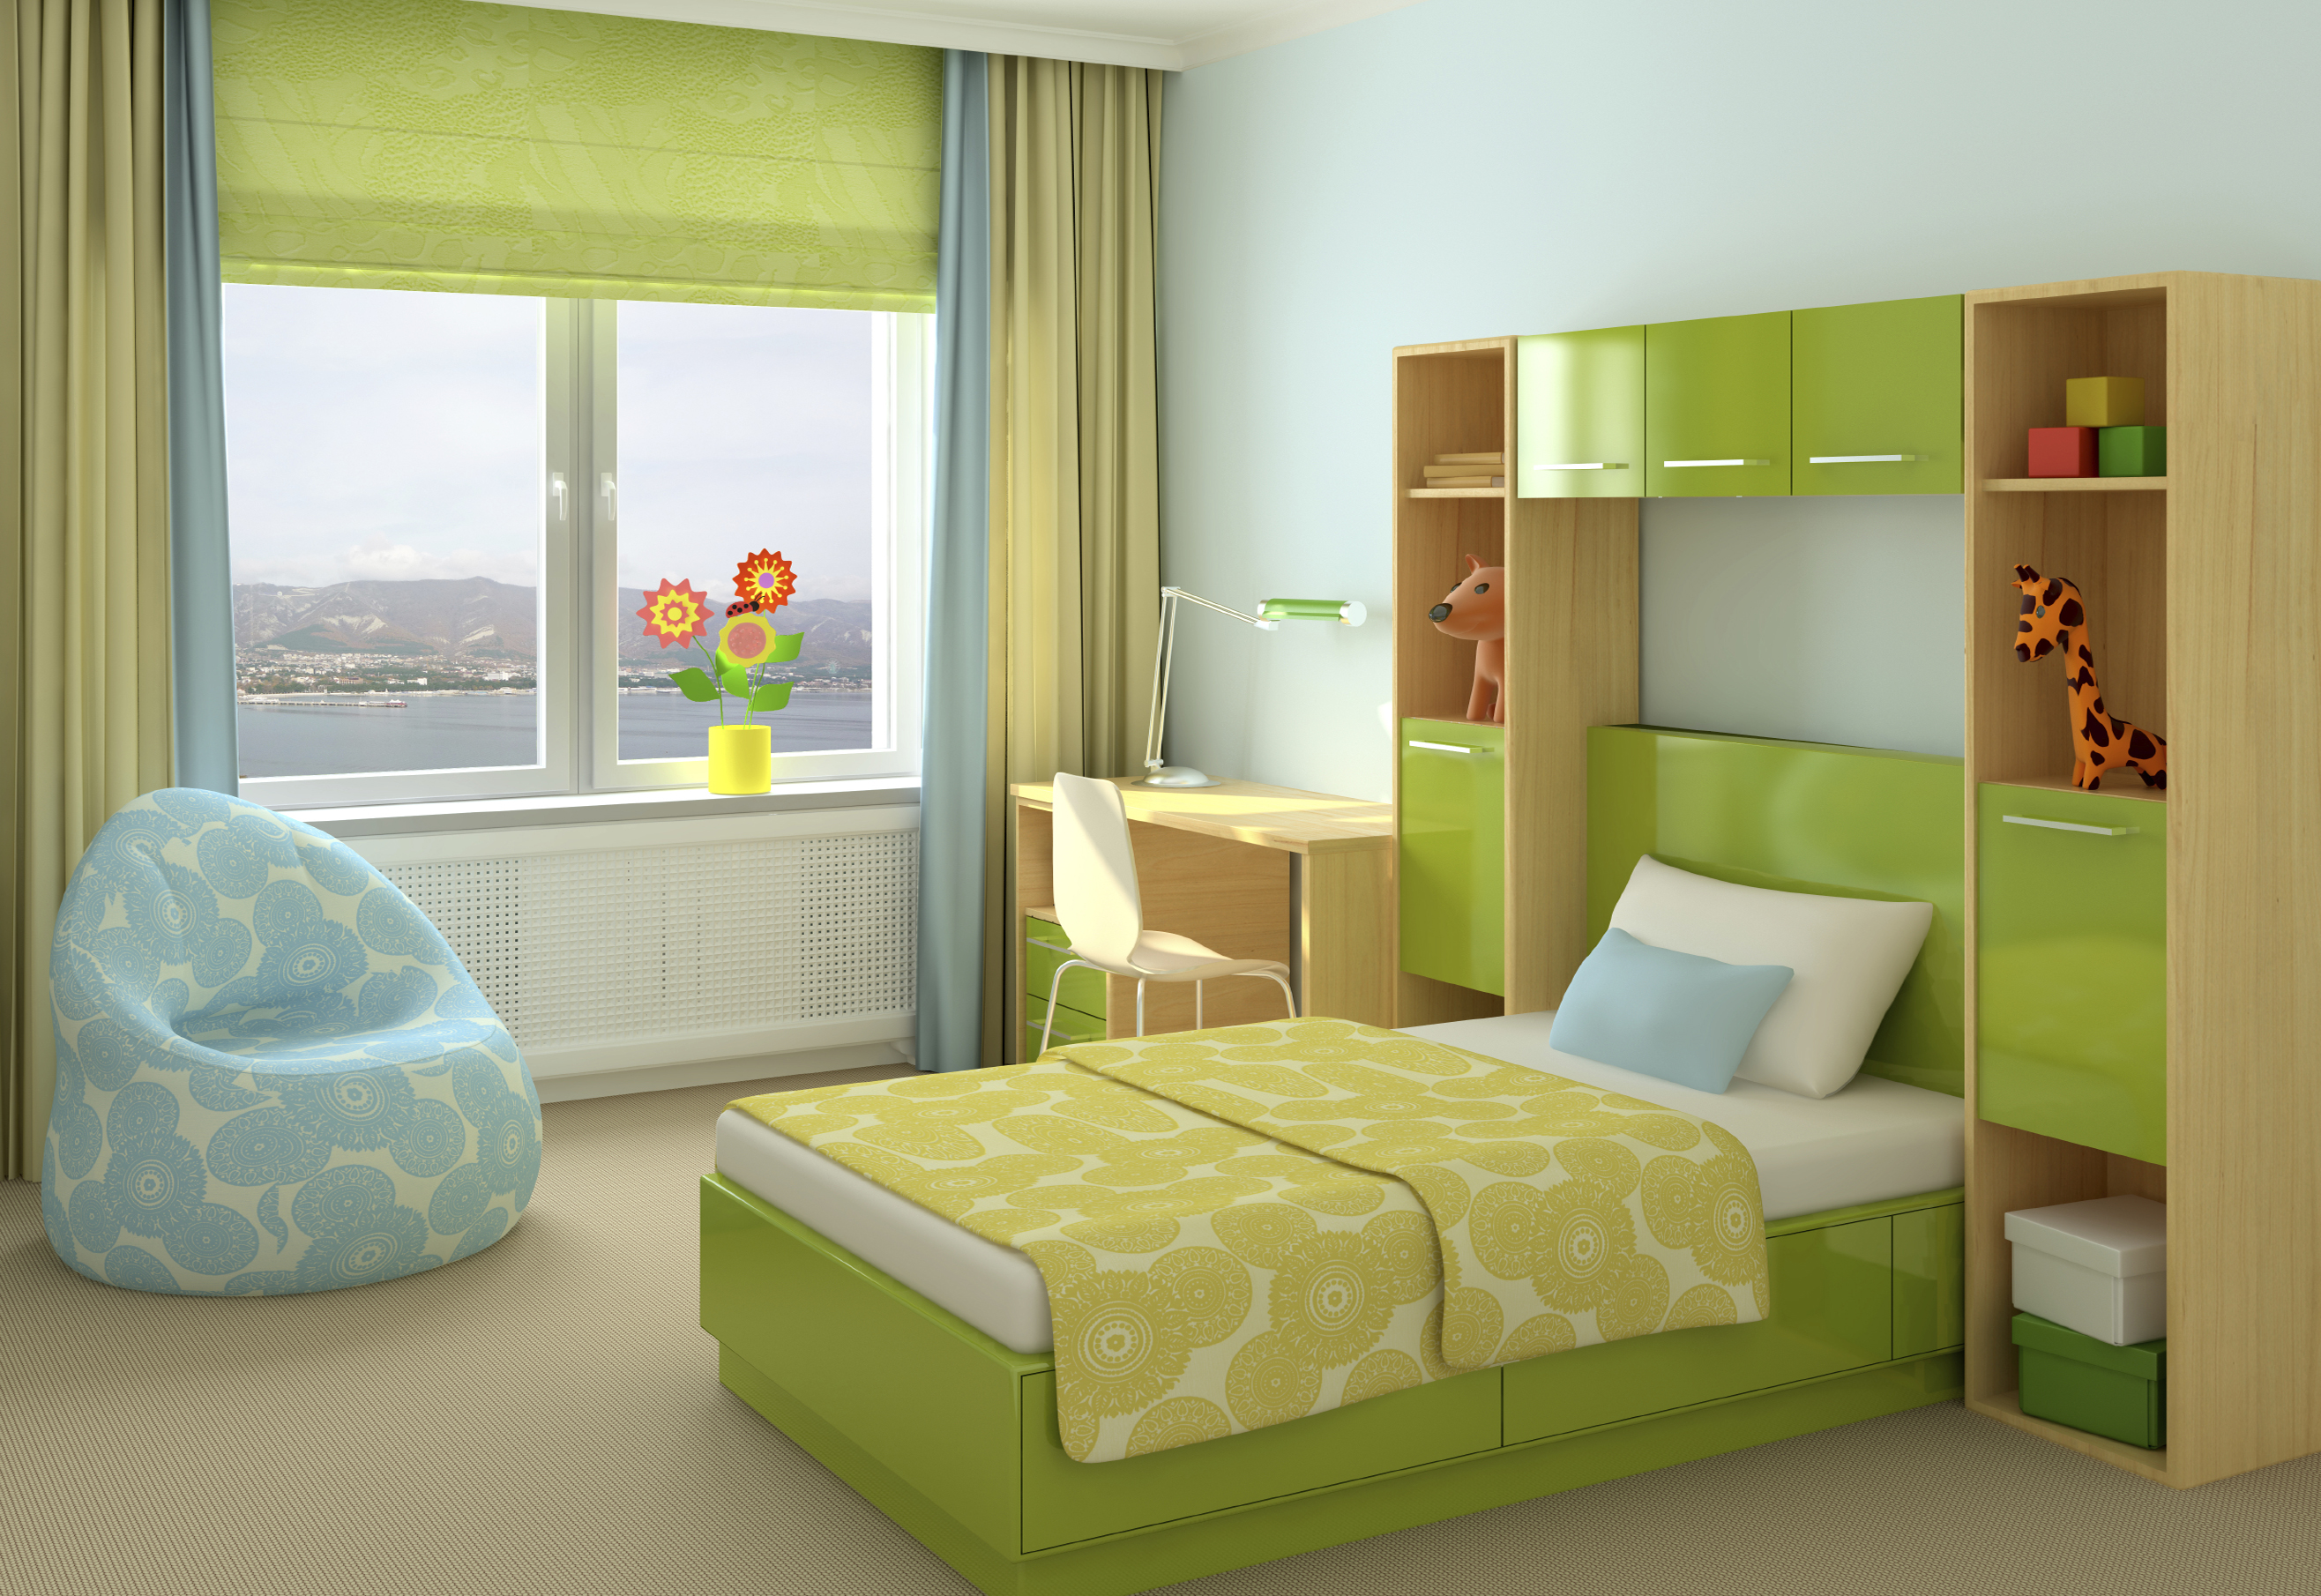 Bedrooms one or two